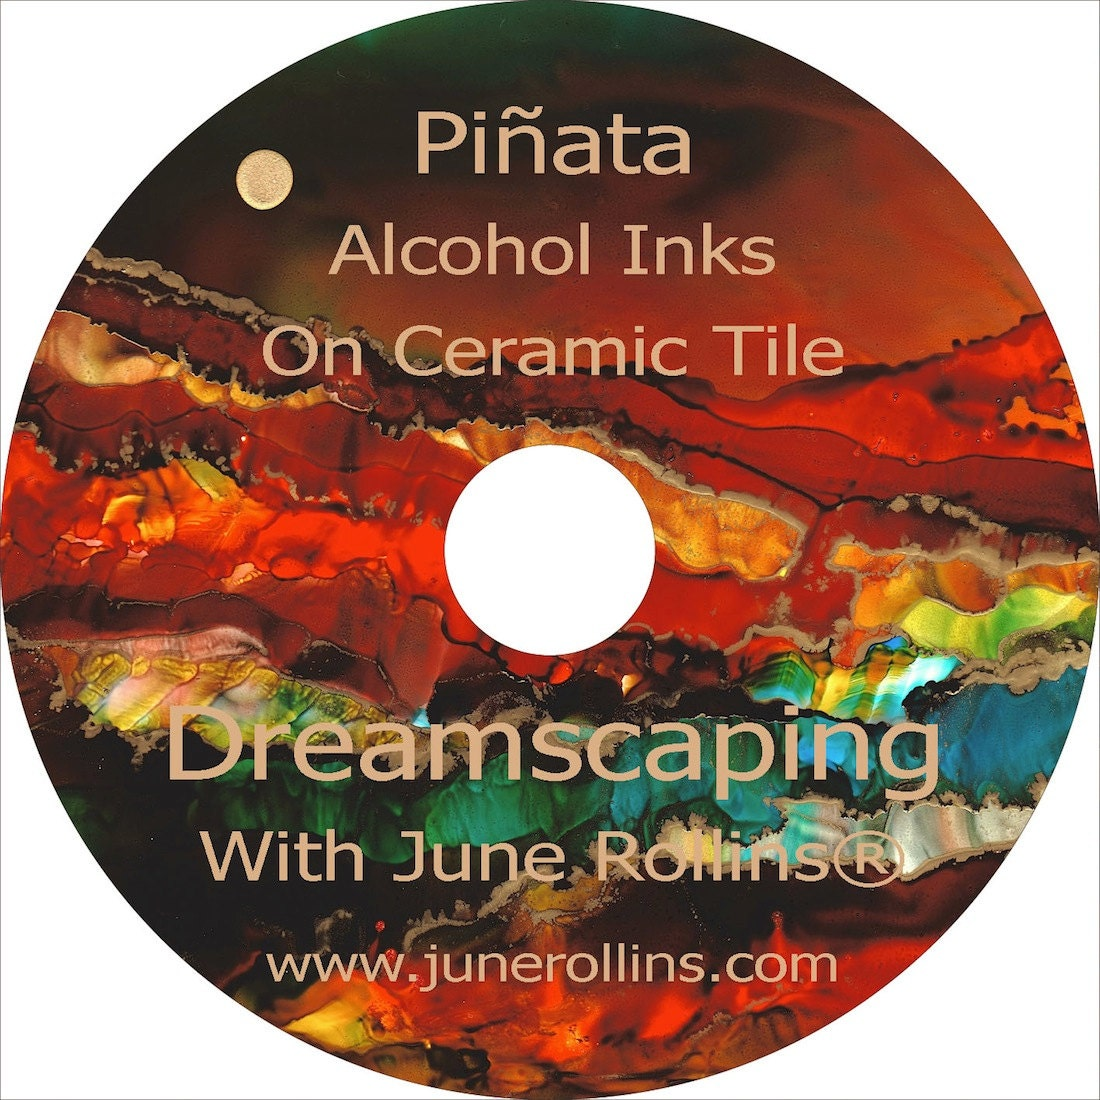 NEW Piñata Alcohol Inks On Ceramic Tile Instructional DVD